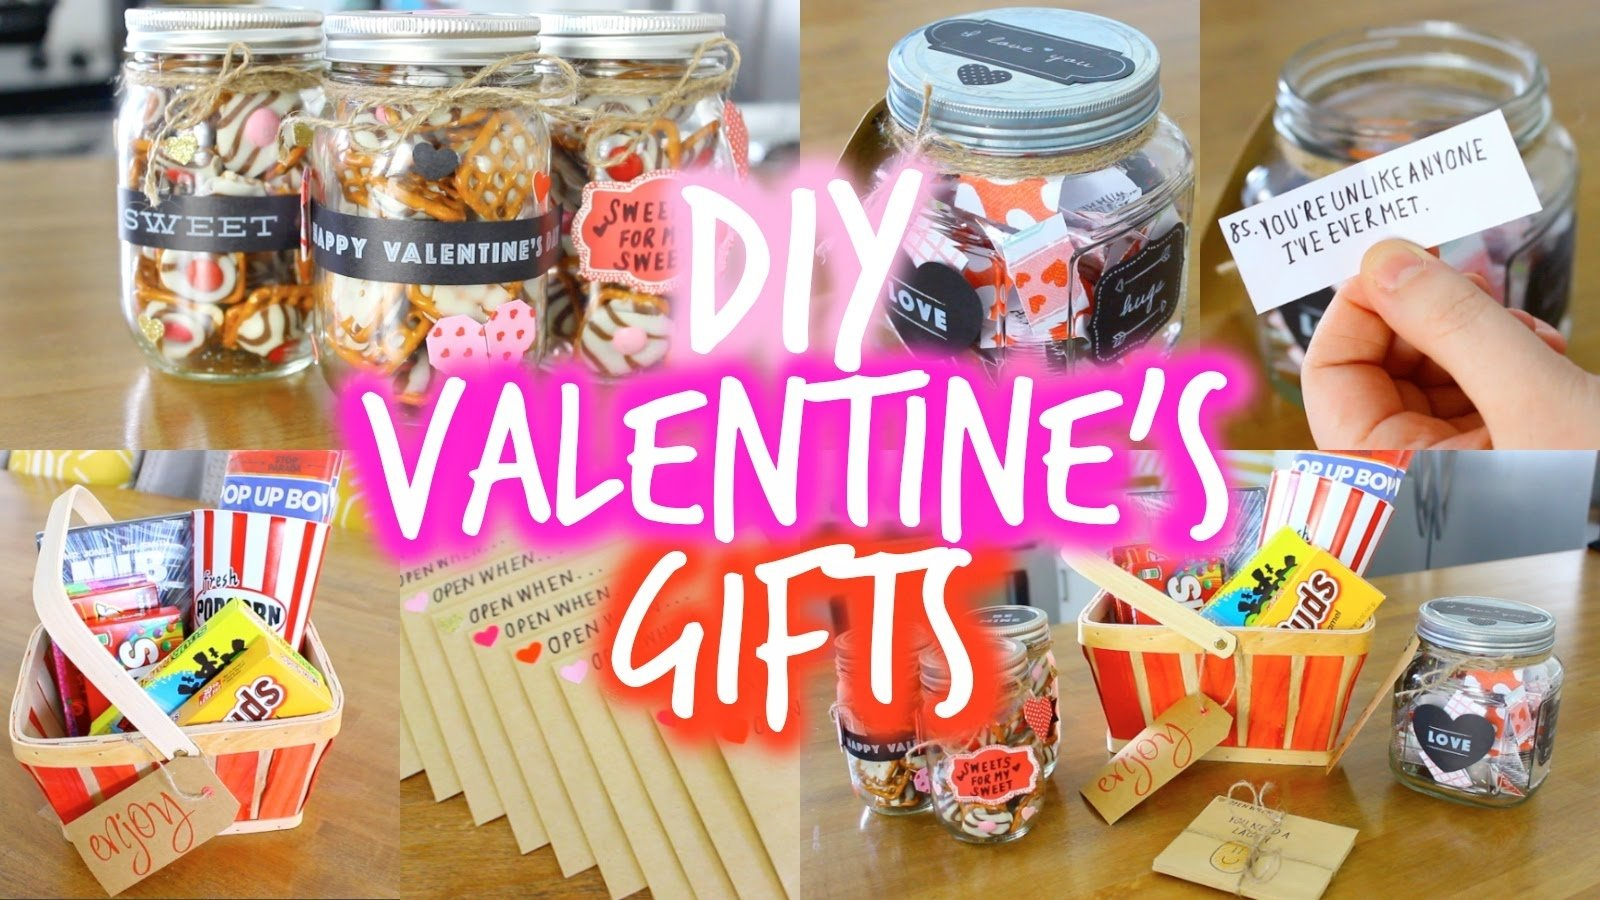 10 Fantastic Valentines Day Ideas For My Boyfriend easy diy valentines day gift ideas for your boyfriend youtube 26 2020